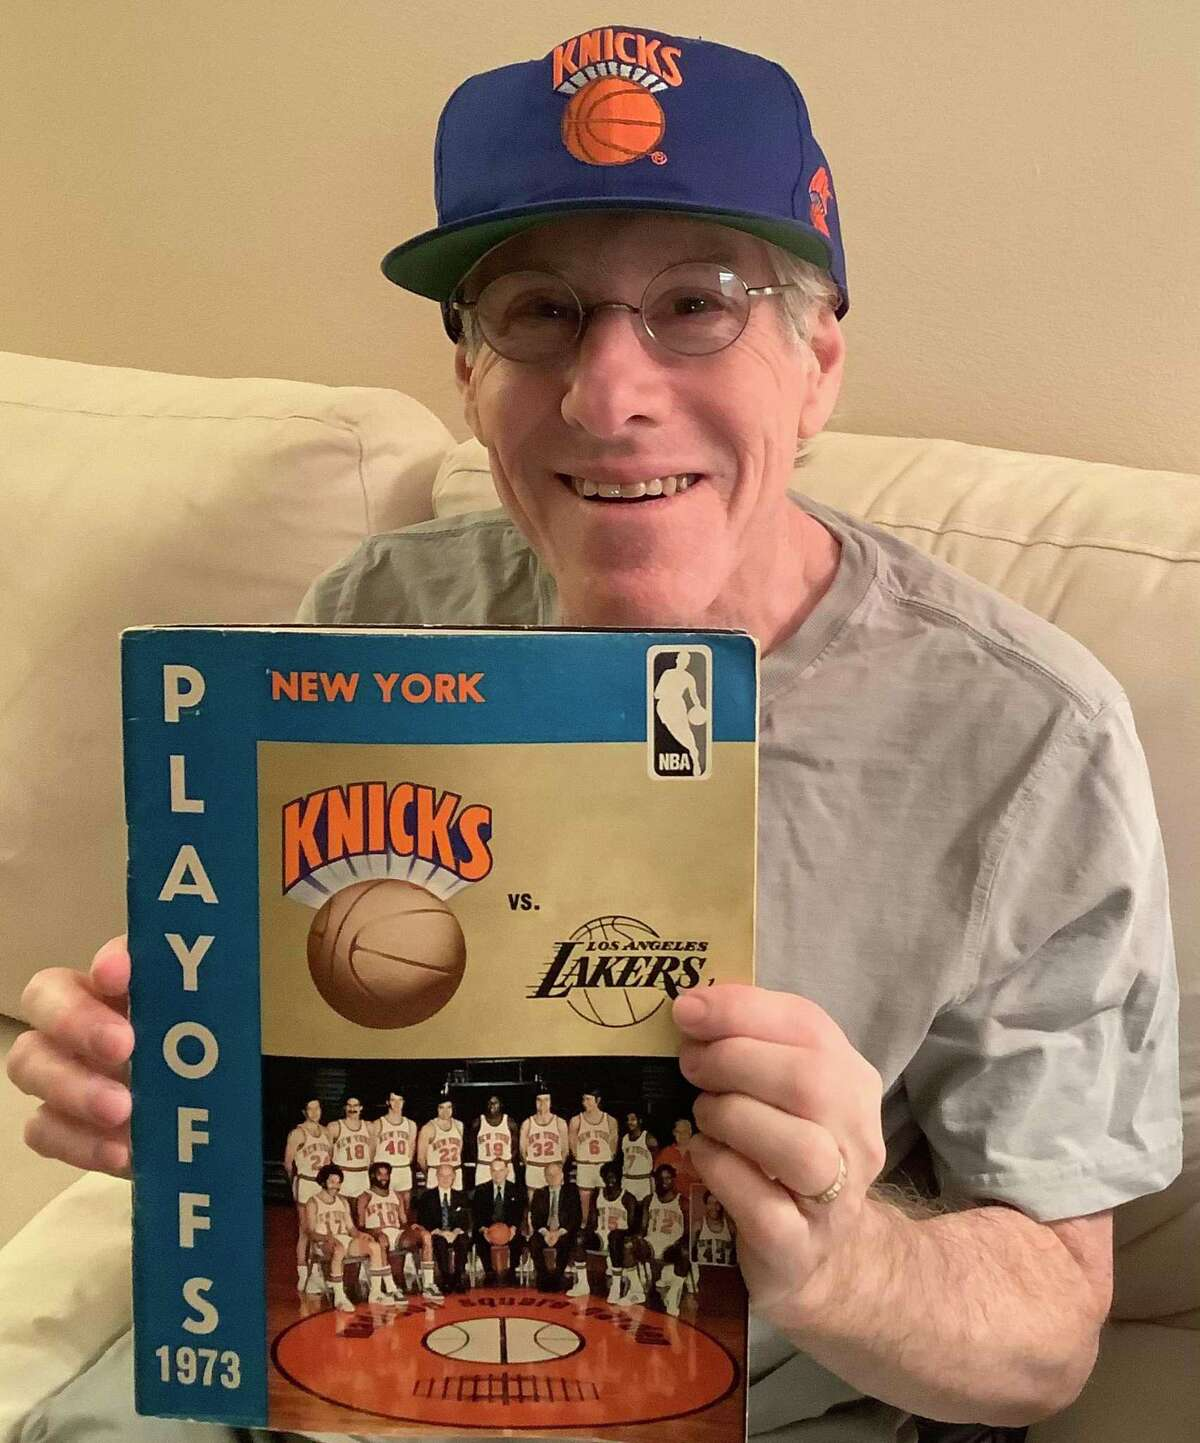 Fred Cantor wearing a hat with a vintage Knicks logo and holding the playoff program from the 1973 NBA Finals, the last time the Knicks won the NBA championship.